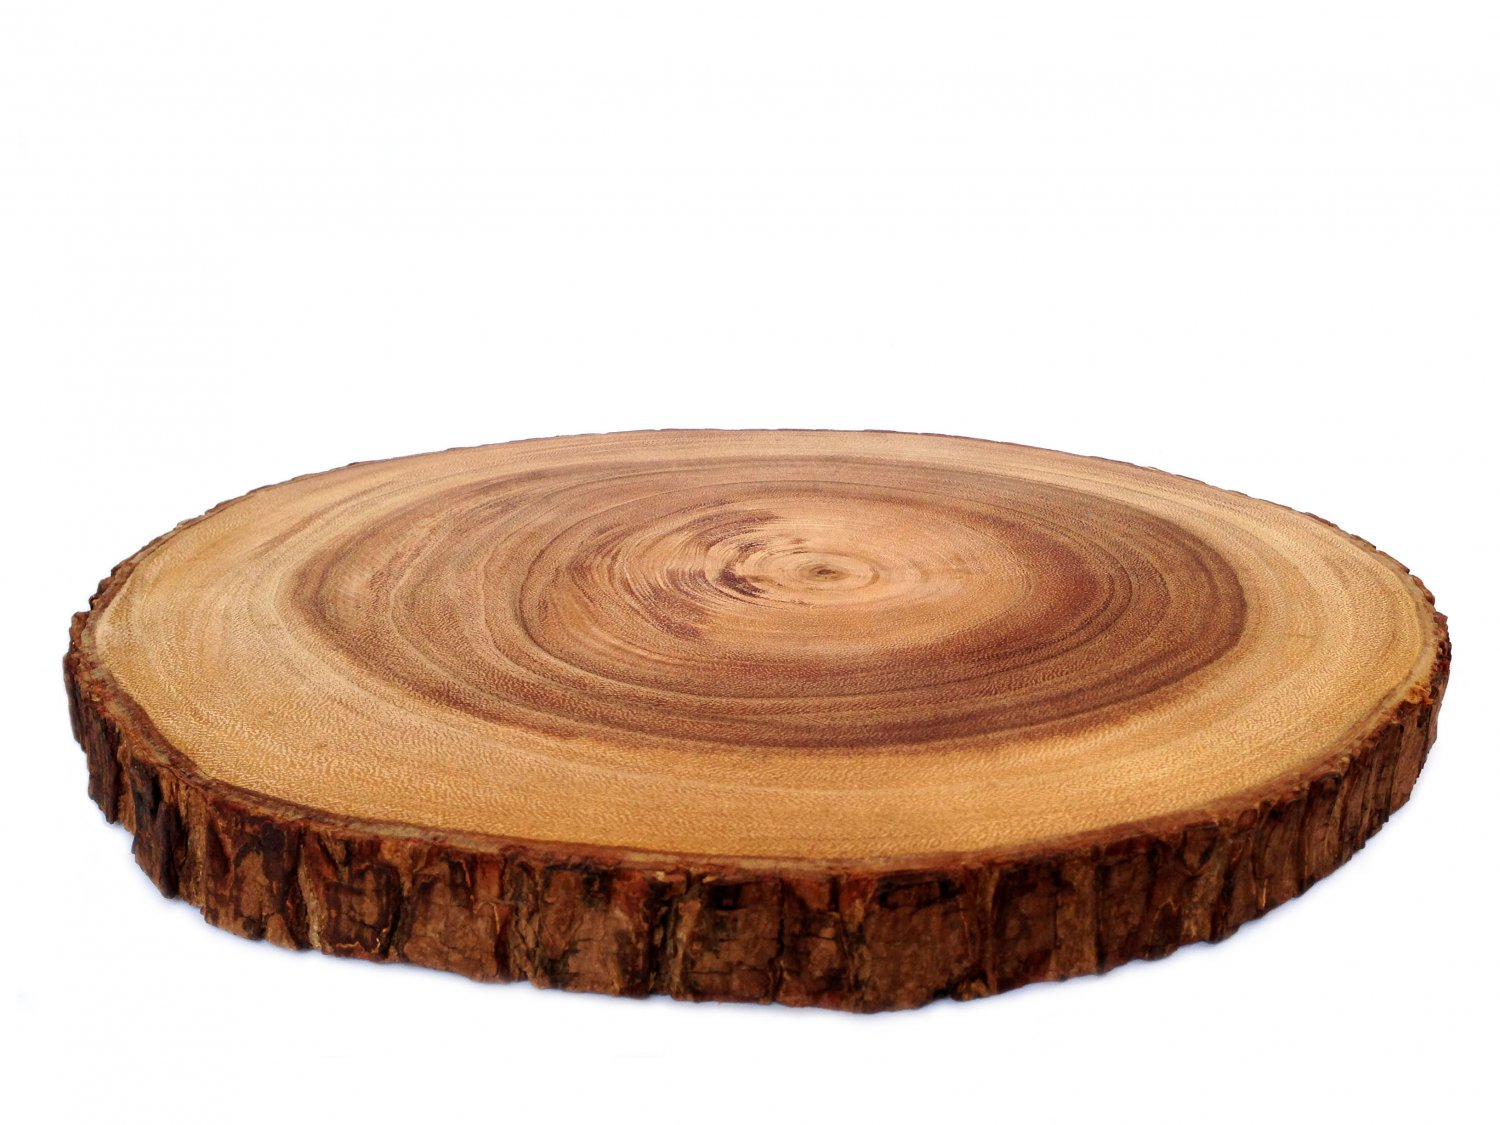 Rustic tree bark wood cutting board wood slice wood for Wood trunk slices